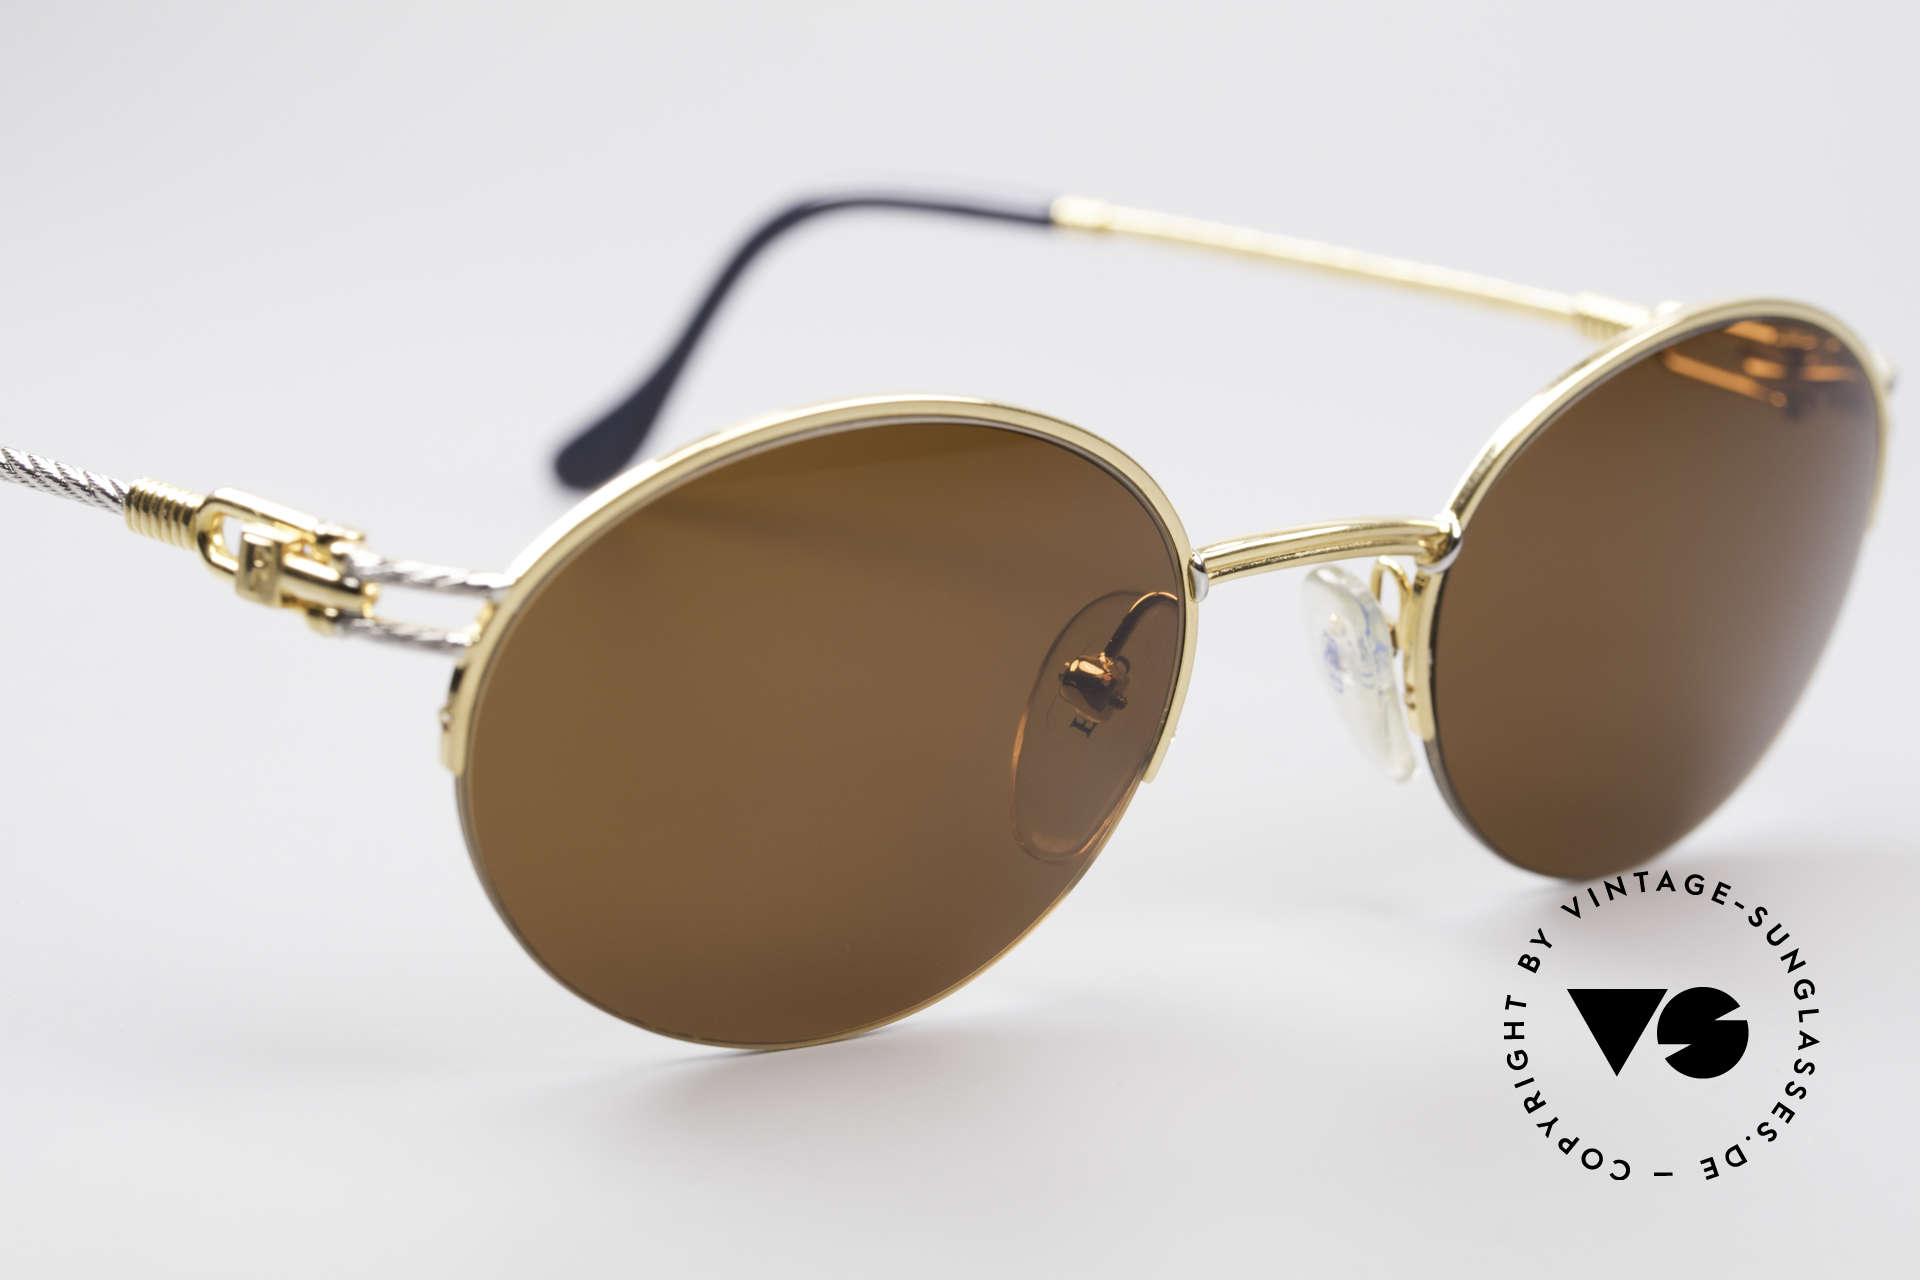 Fred Feroe Oval Luxury Sunglasses, with orig. Fred packing (hard box, certificate, case ..), Made for Men and Women